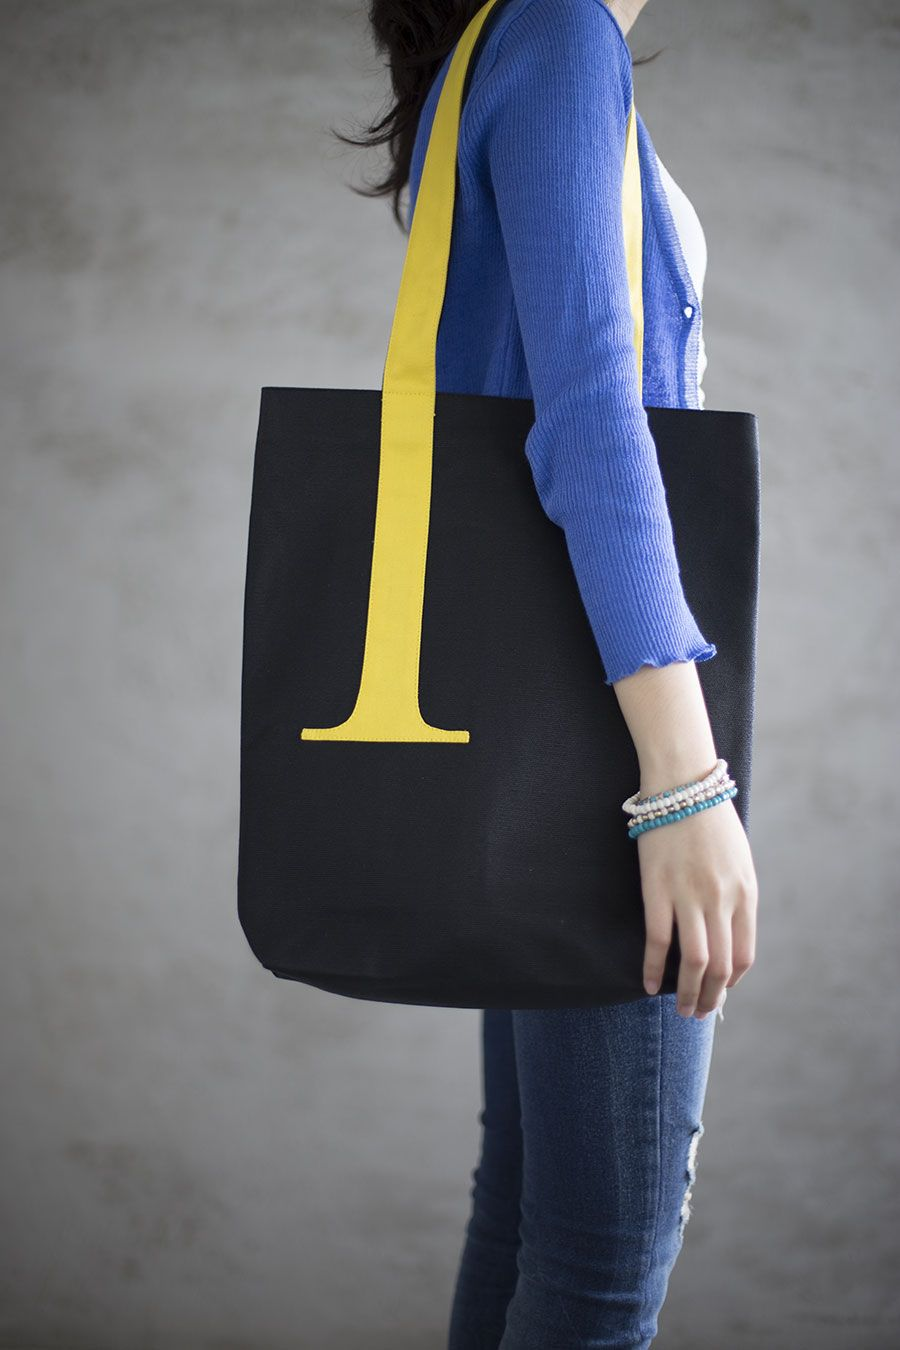 SERIF TOTE HIGHLIGHTED BY DENNIS WONG